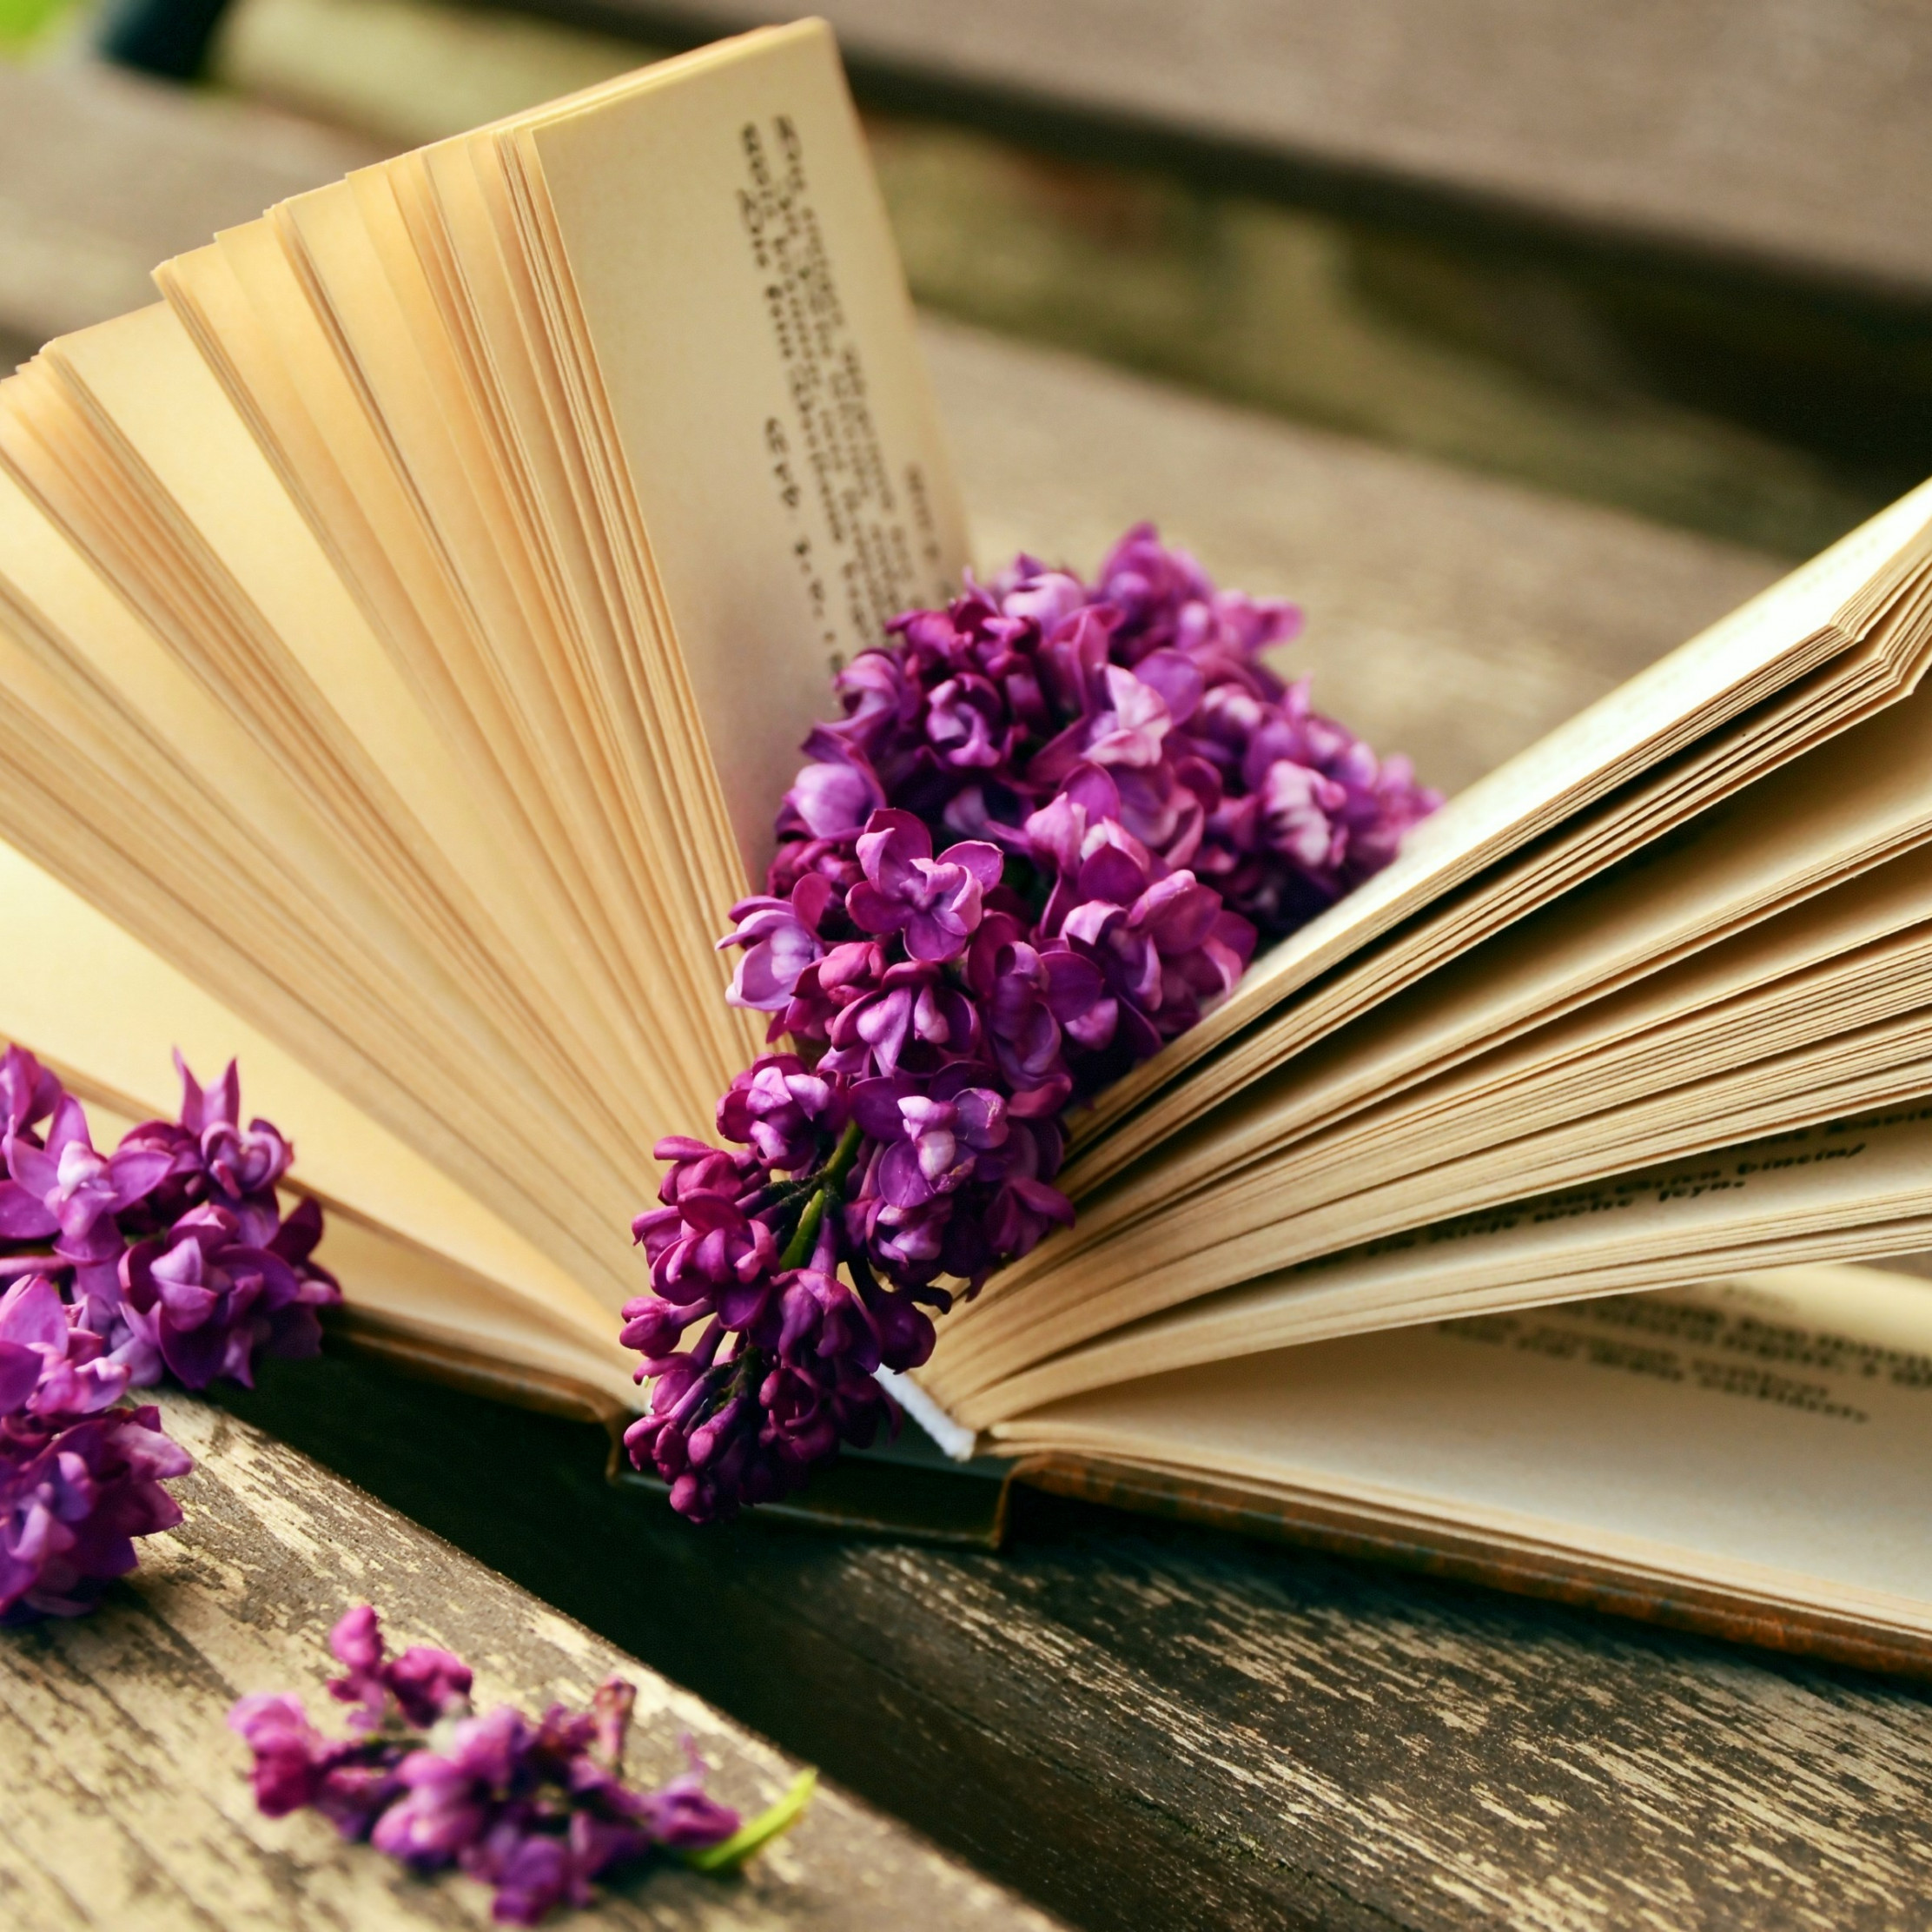 Lilac flowers and a good book wallpaper 2224x2224